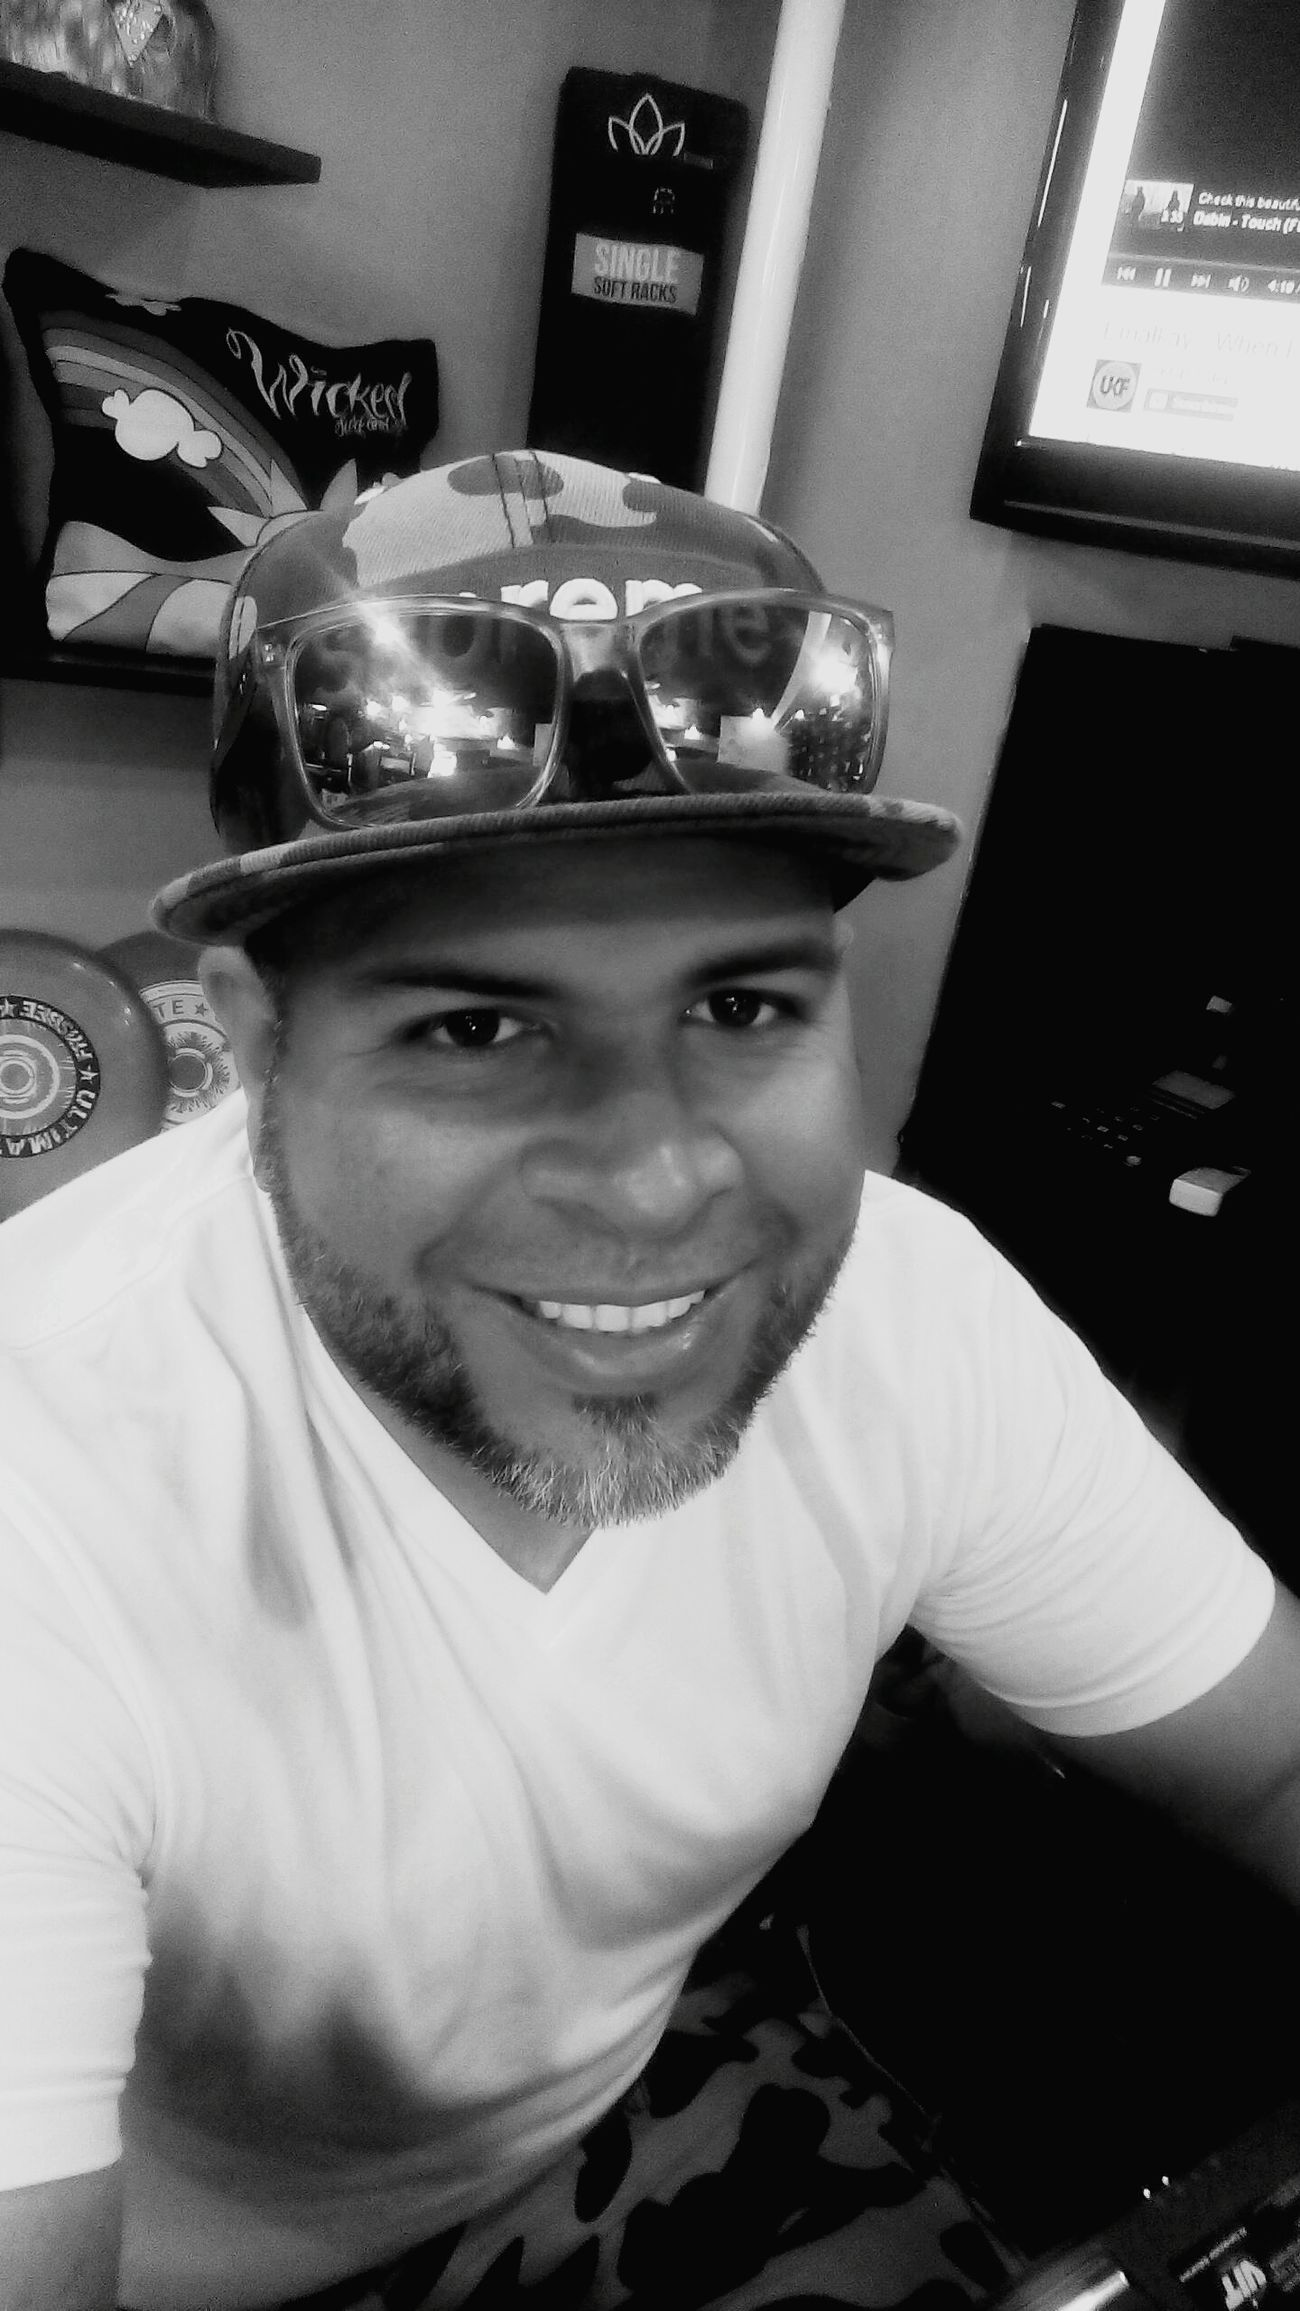 Myself 2015 Selfie Venezuela Morenos Quality Time Pure Perfection Fashion Style Bigboy Smile Supreme